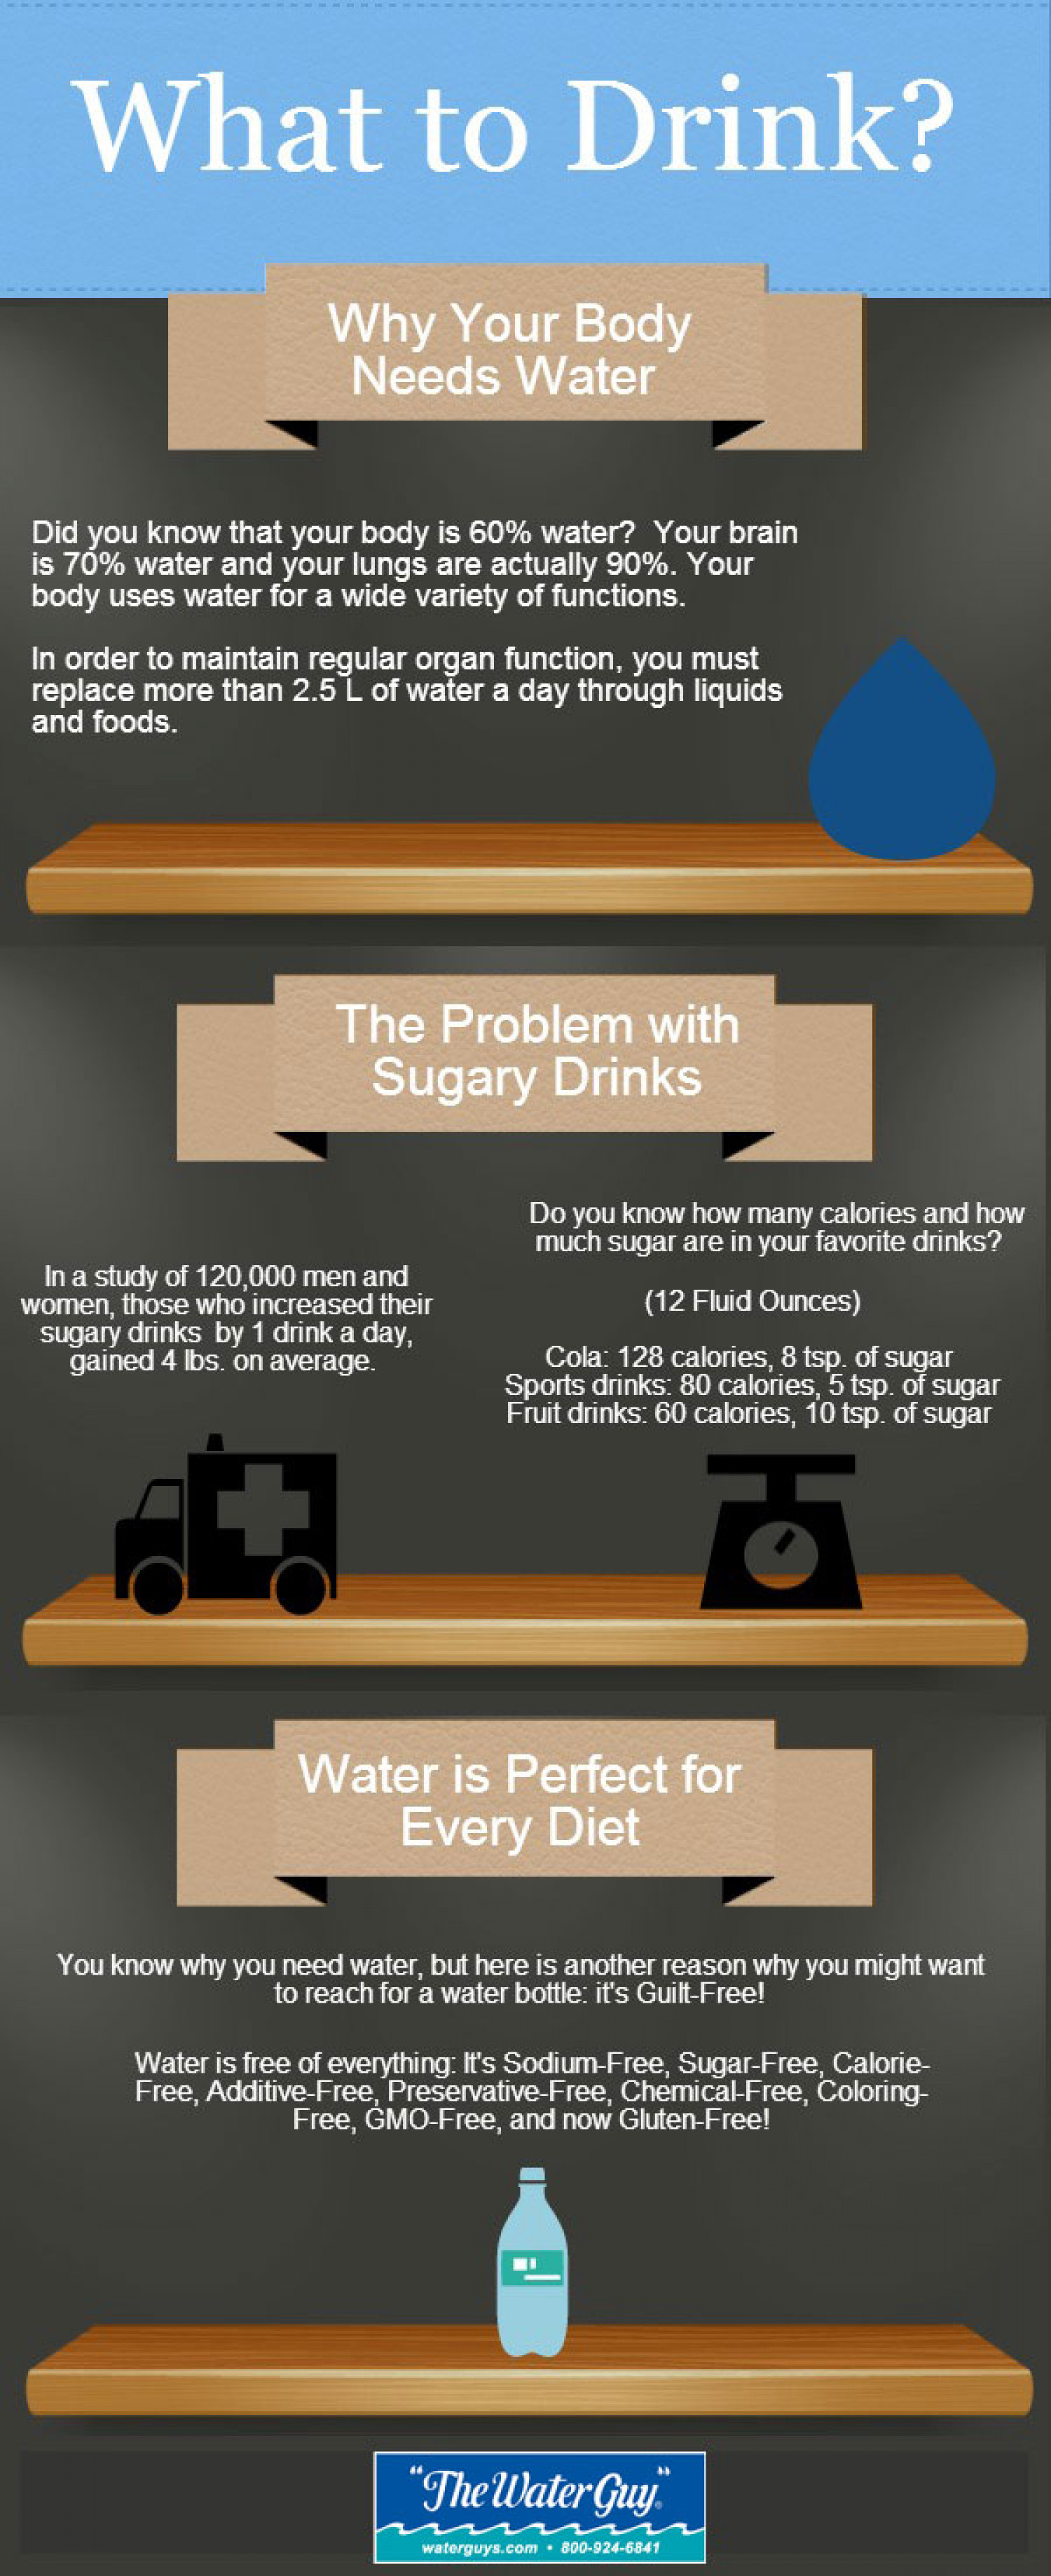 Why Your Body Needs Water Infographic